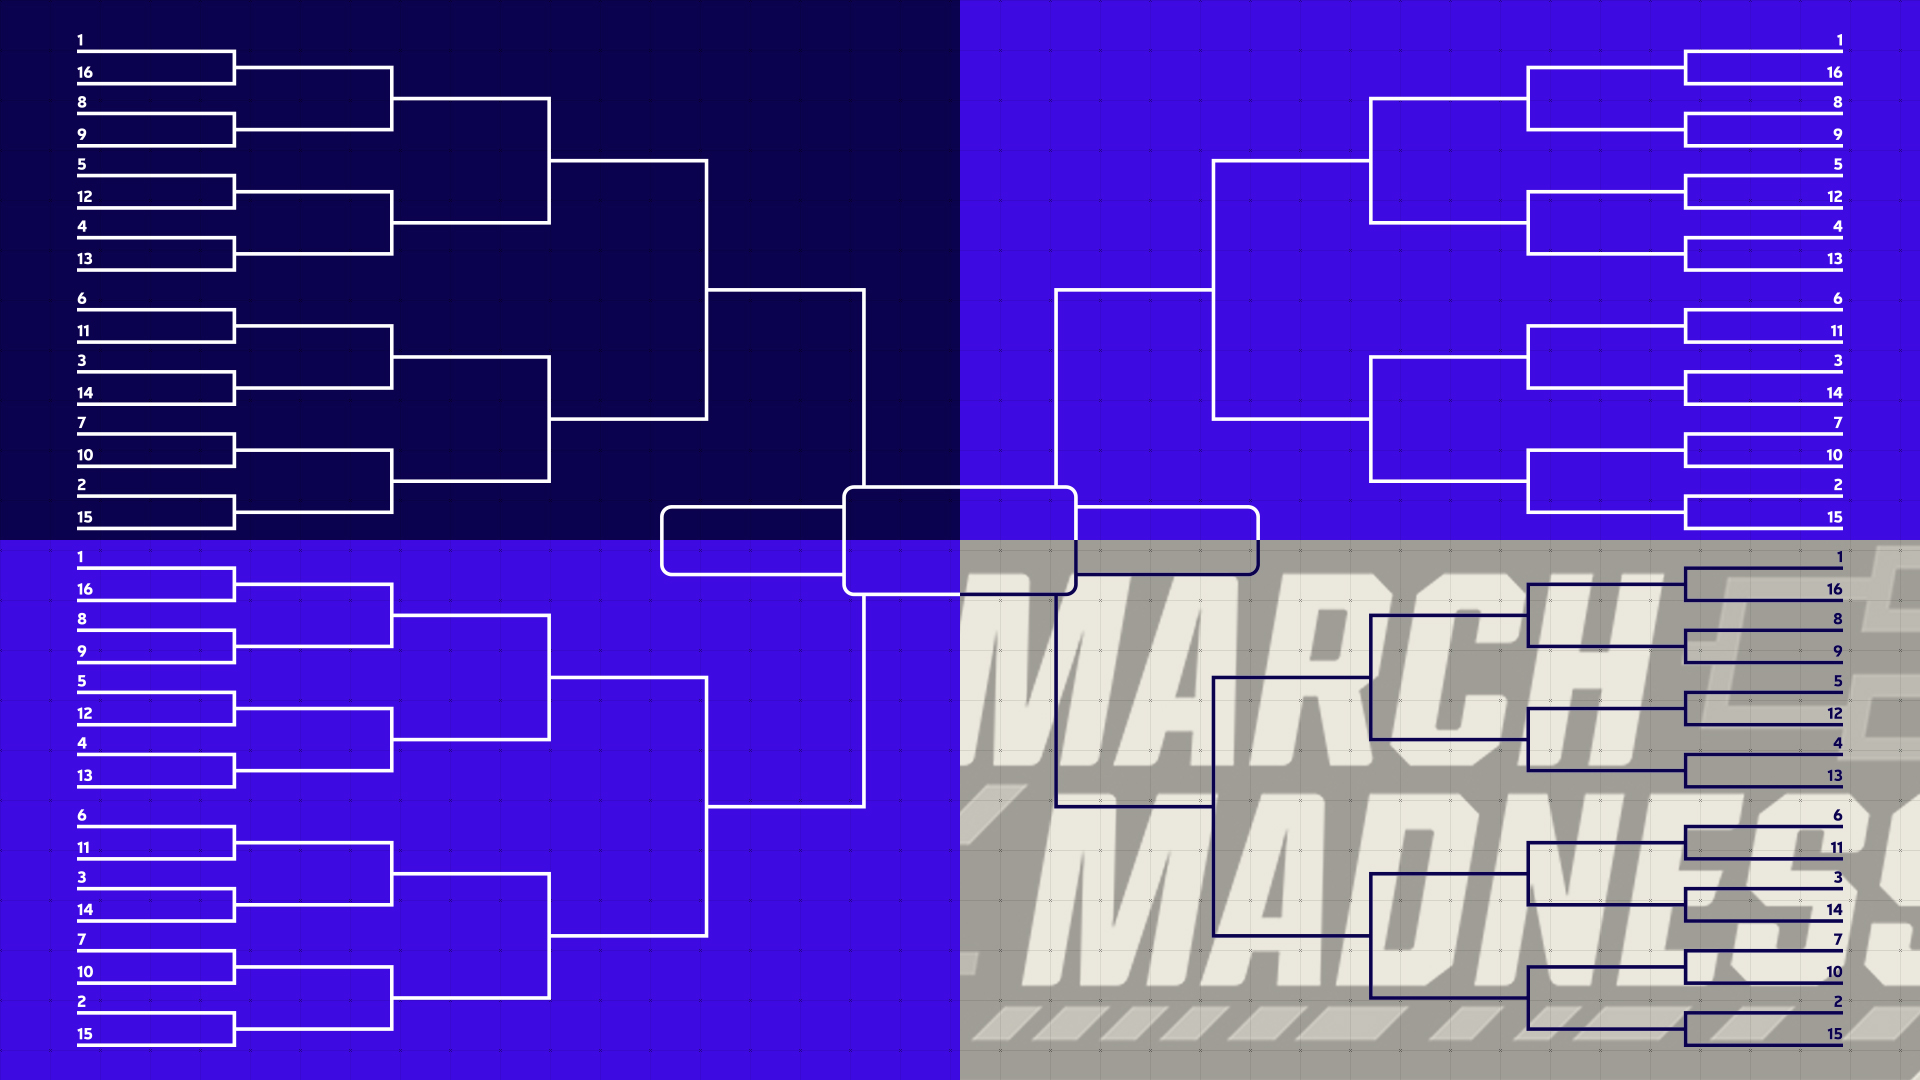 Missing March Madness 2020: Sweet 16 resultados de votación del grupo de torneos de la NCAA, Día 2 11